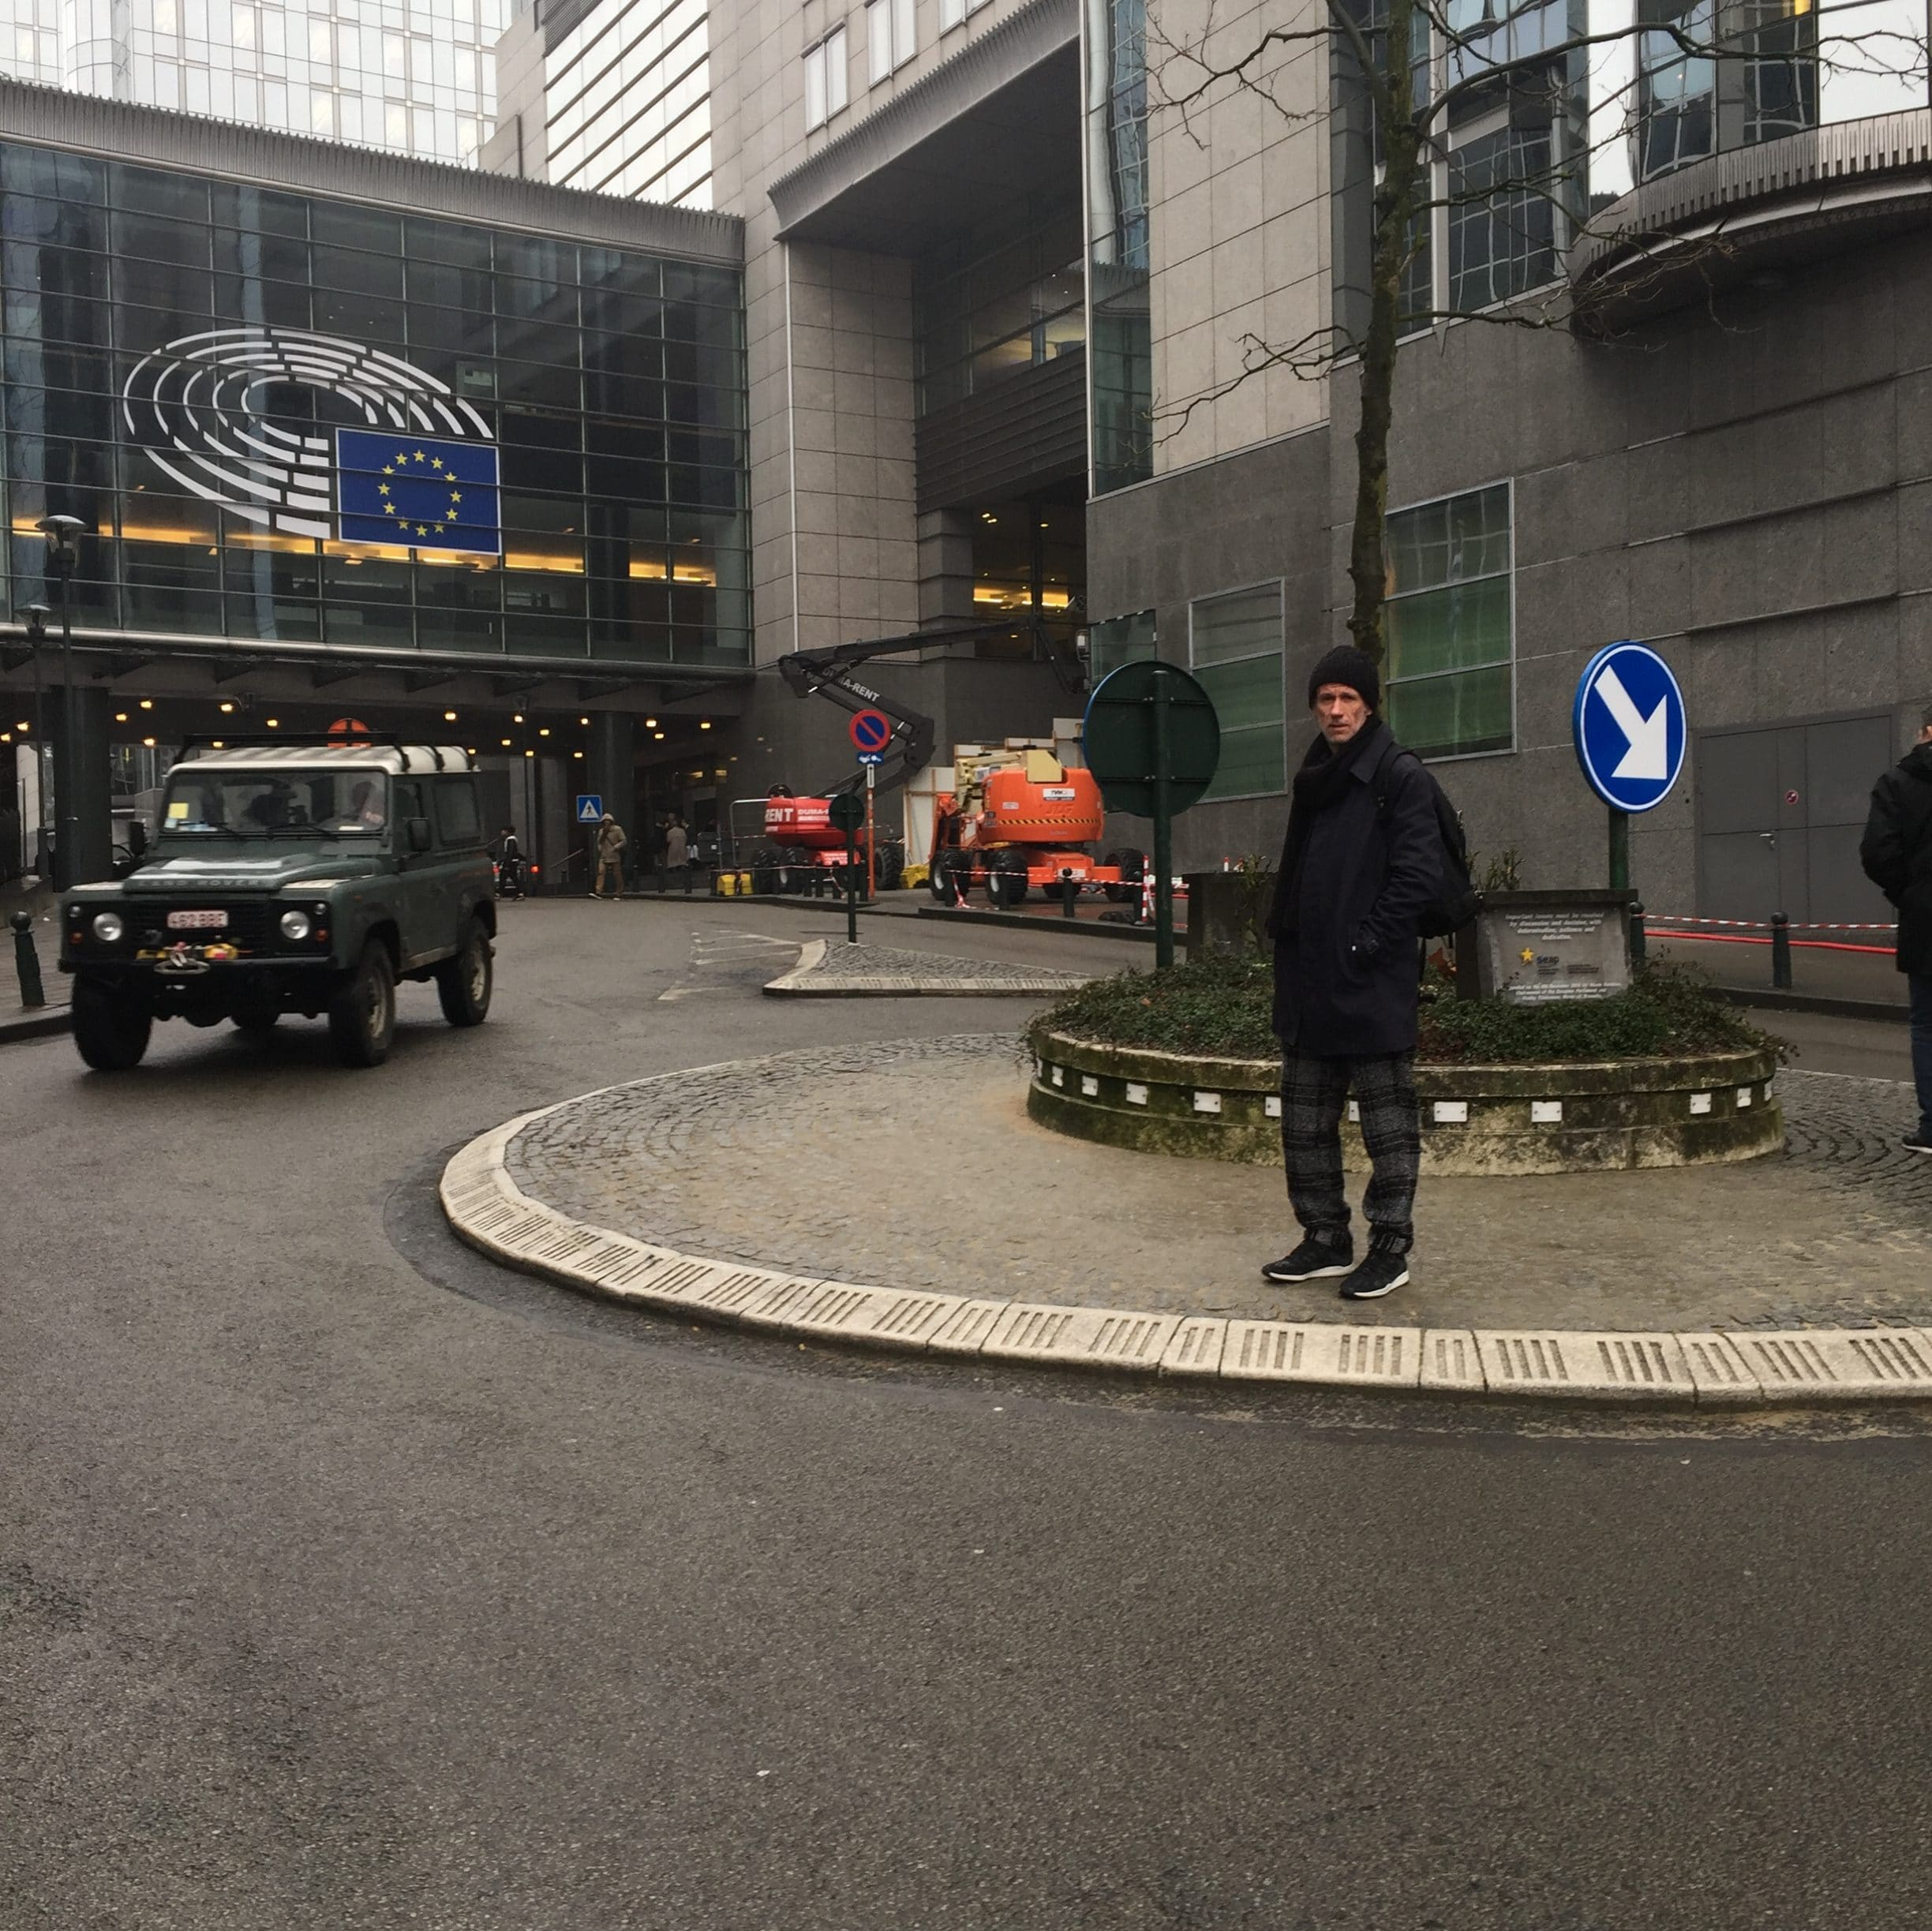 why right now in Brussels?